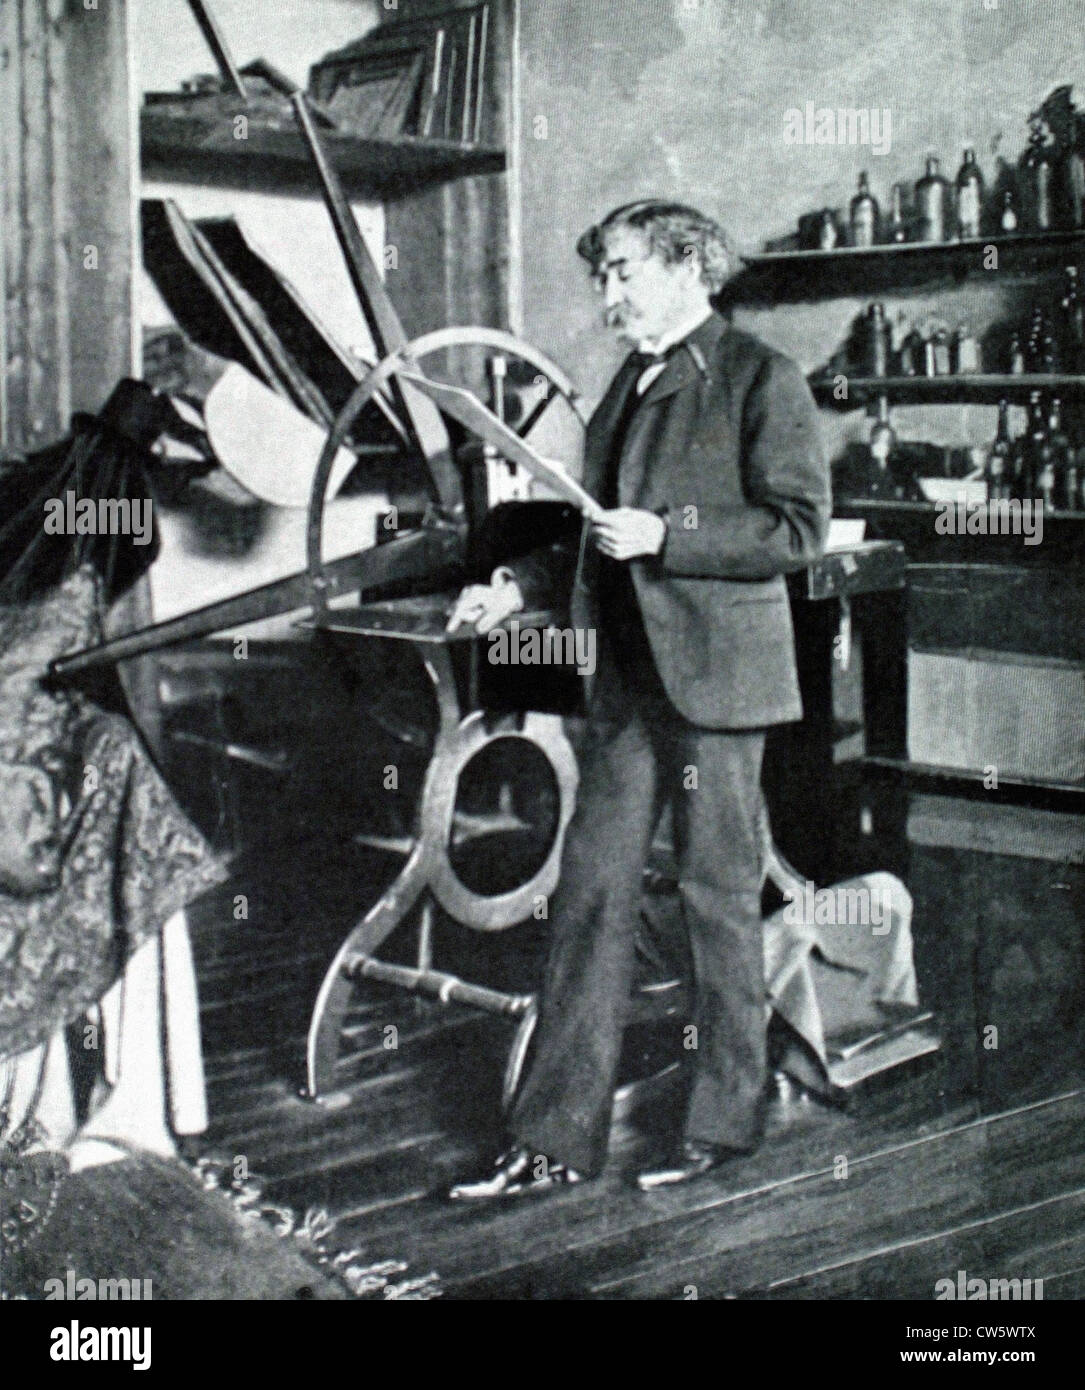 Painter James McNeil Whistler standing by his etching press (1903) - Stock Image